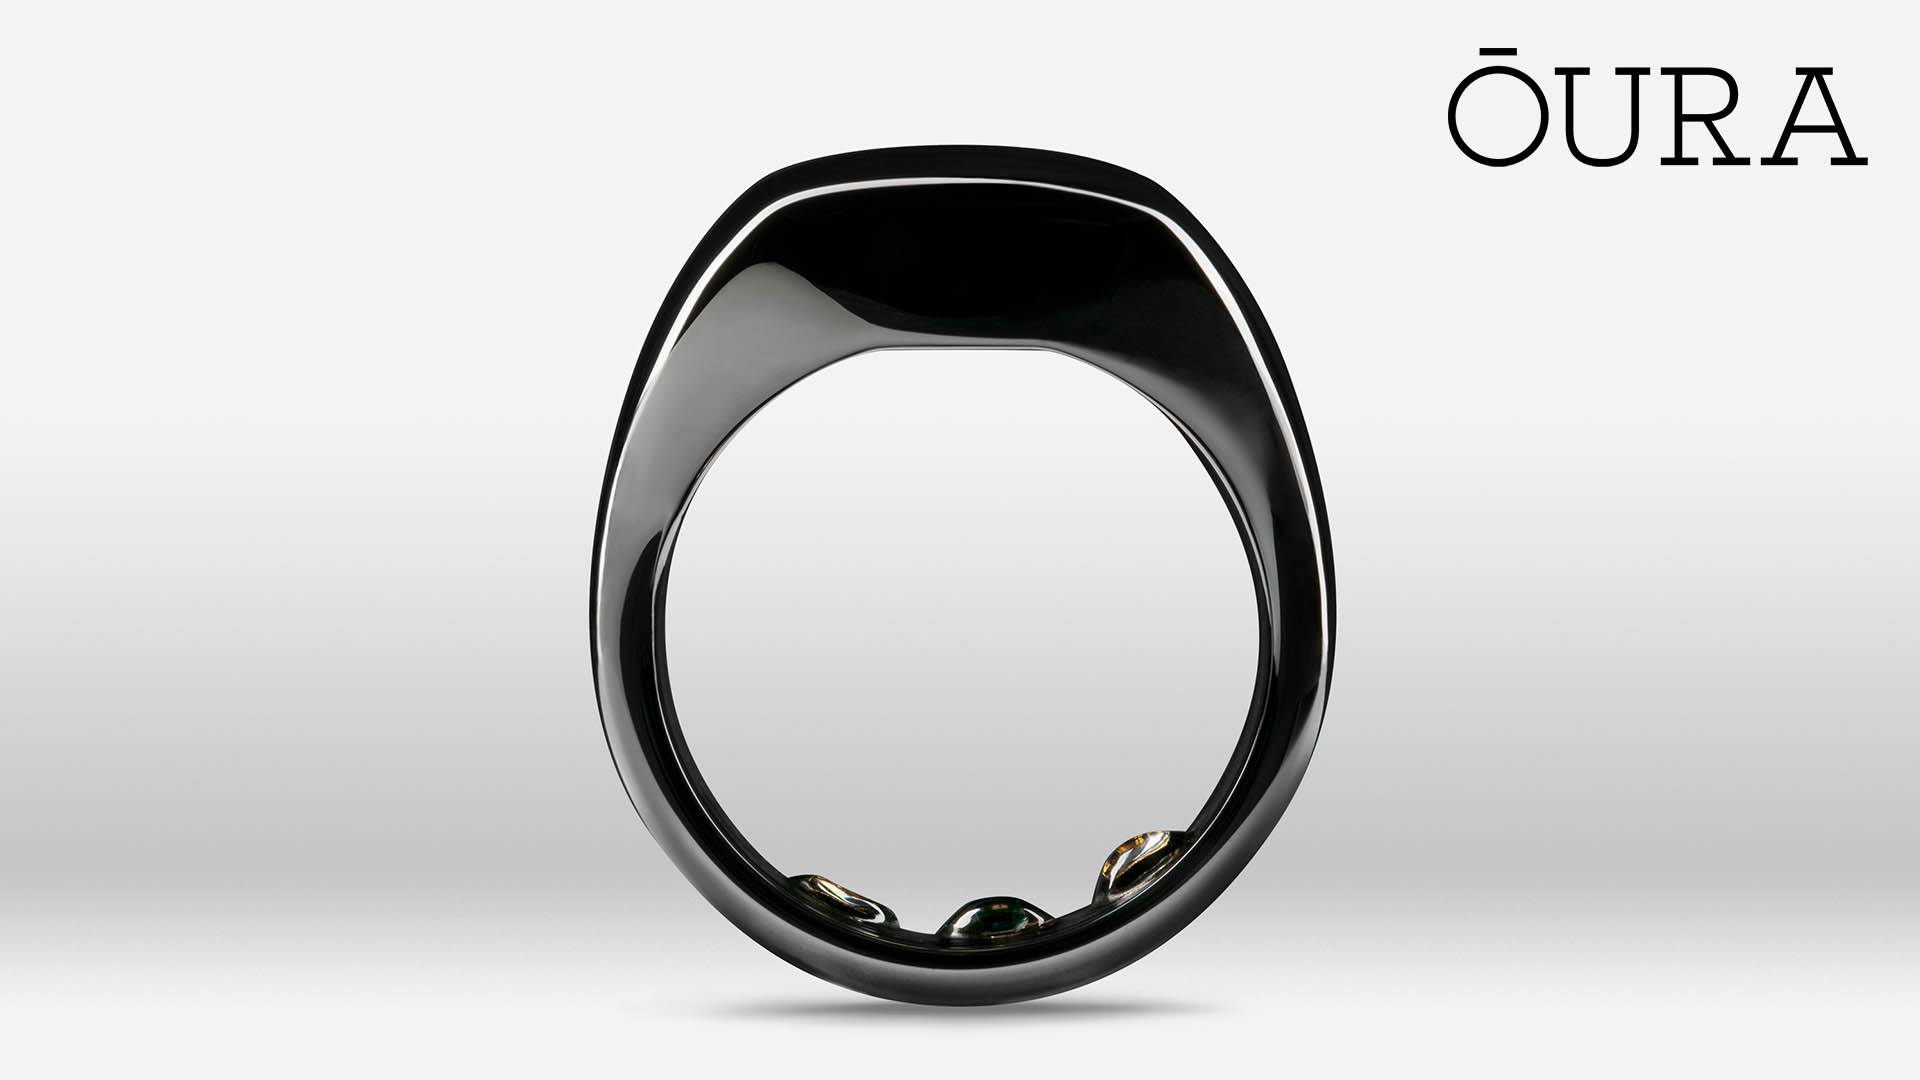 oura ring pemf devices benefits